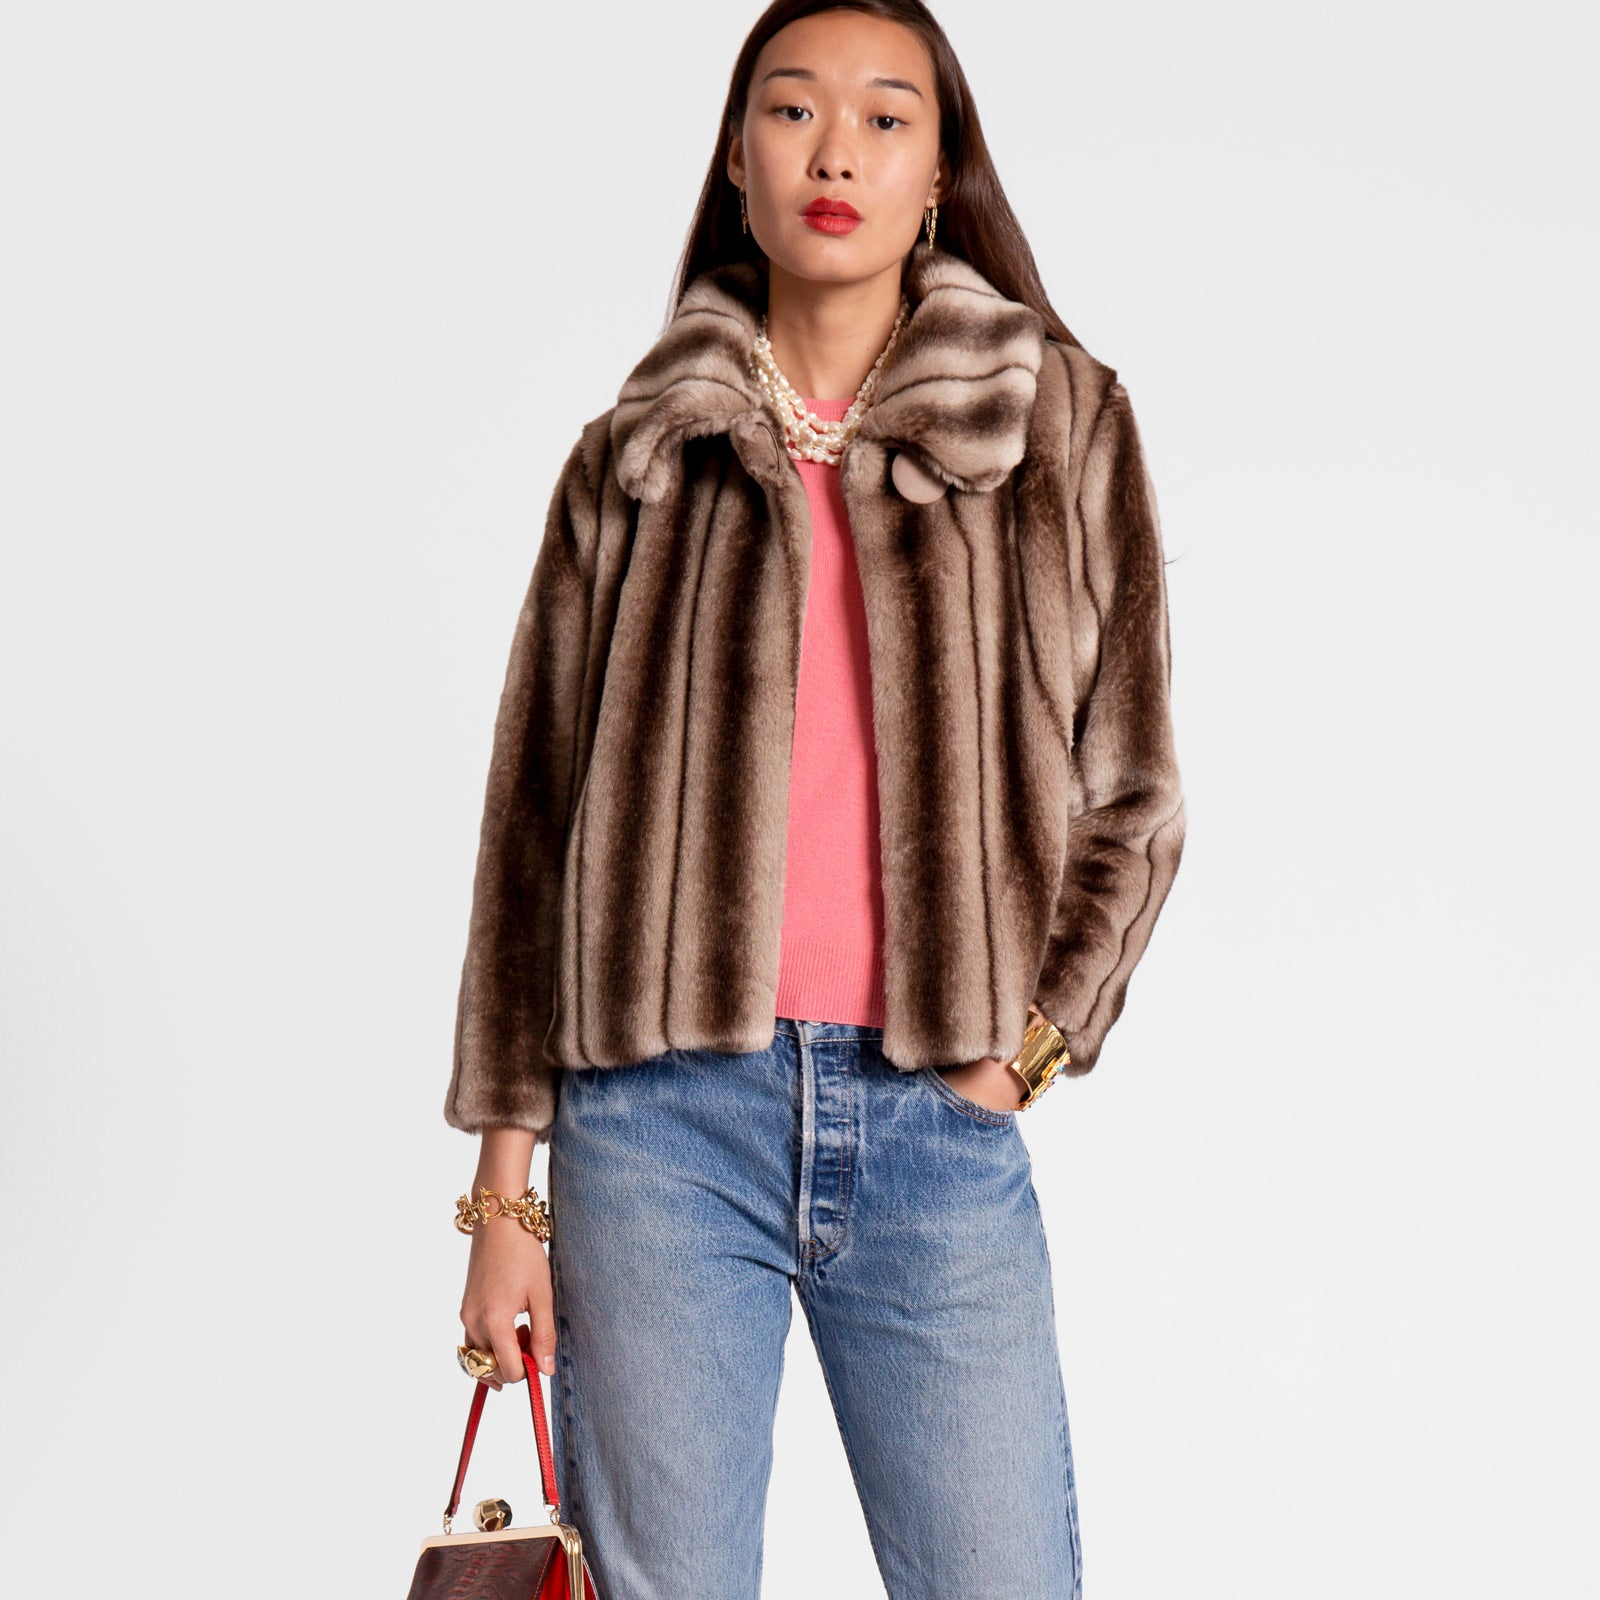 Short Faux Fur Jacket Mink - Frances Valentine